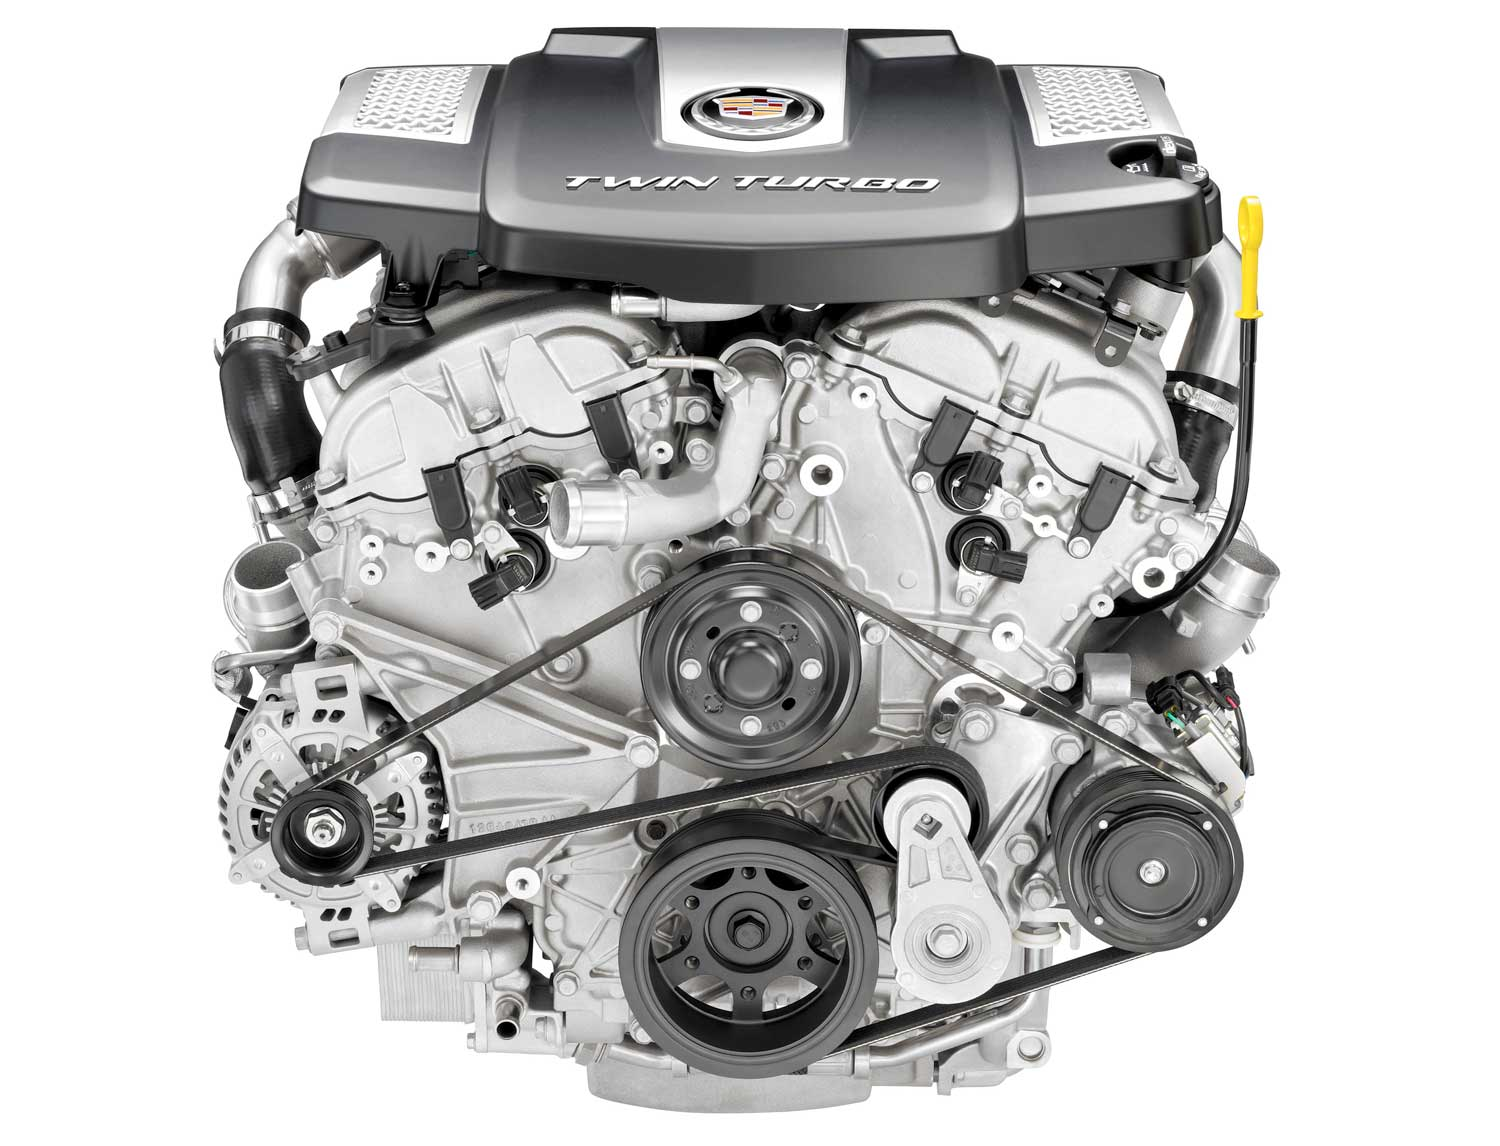 cadillac adds twin turbo v 6 to new cts rh automobilemag com 2005 cadillac sts v6 engine diagram Cadillac 3.6 V6 Engine Diagram